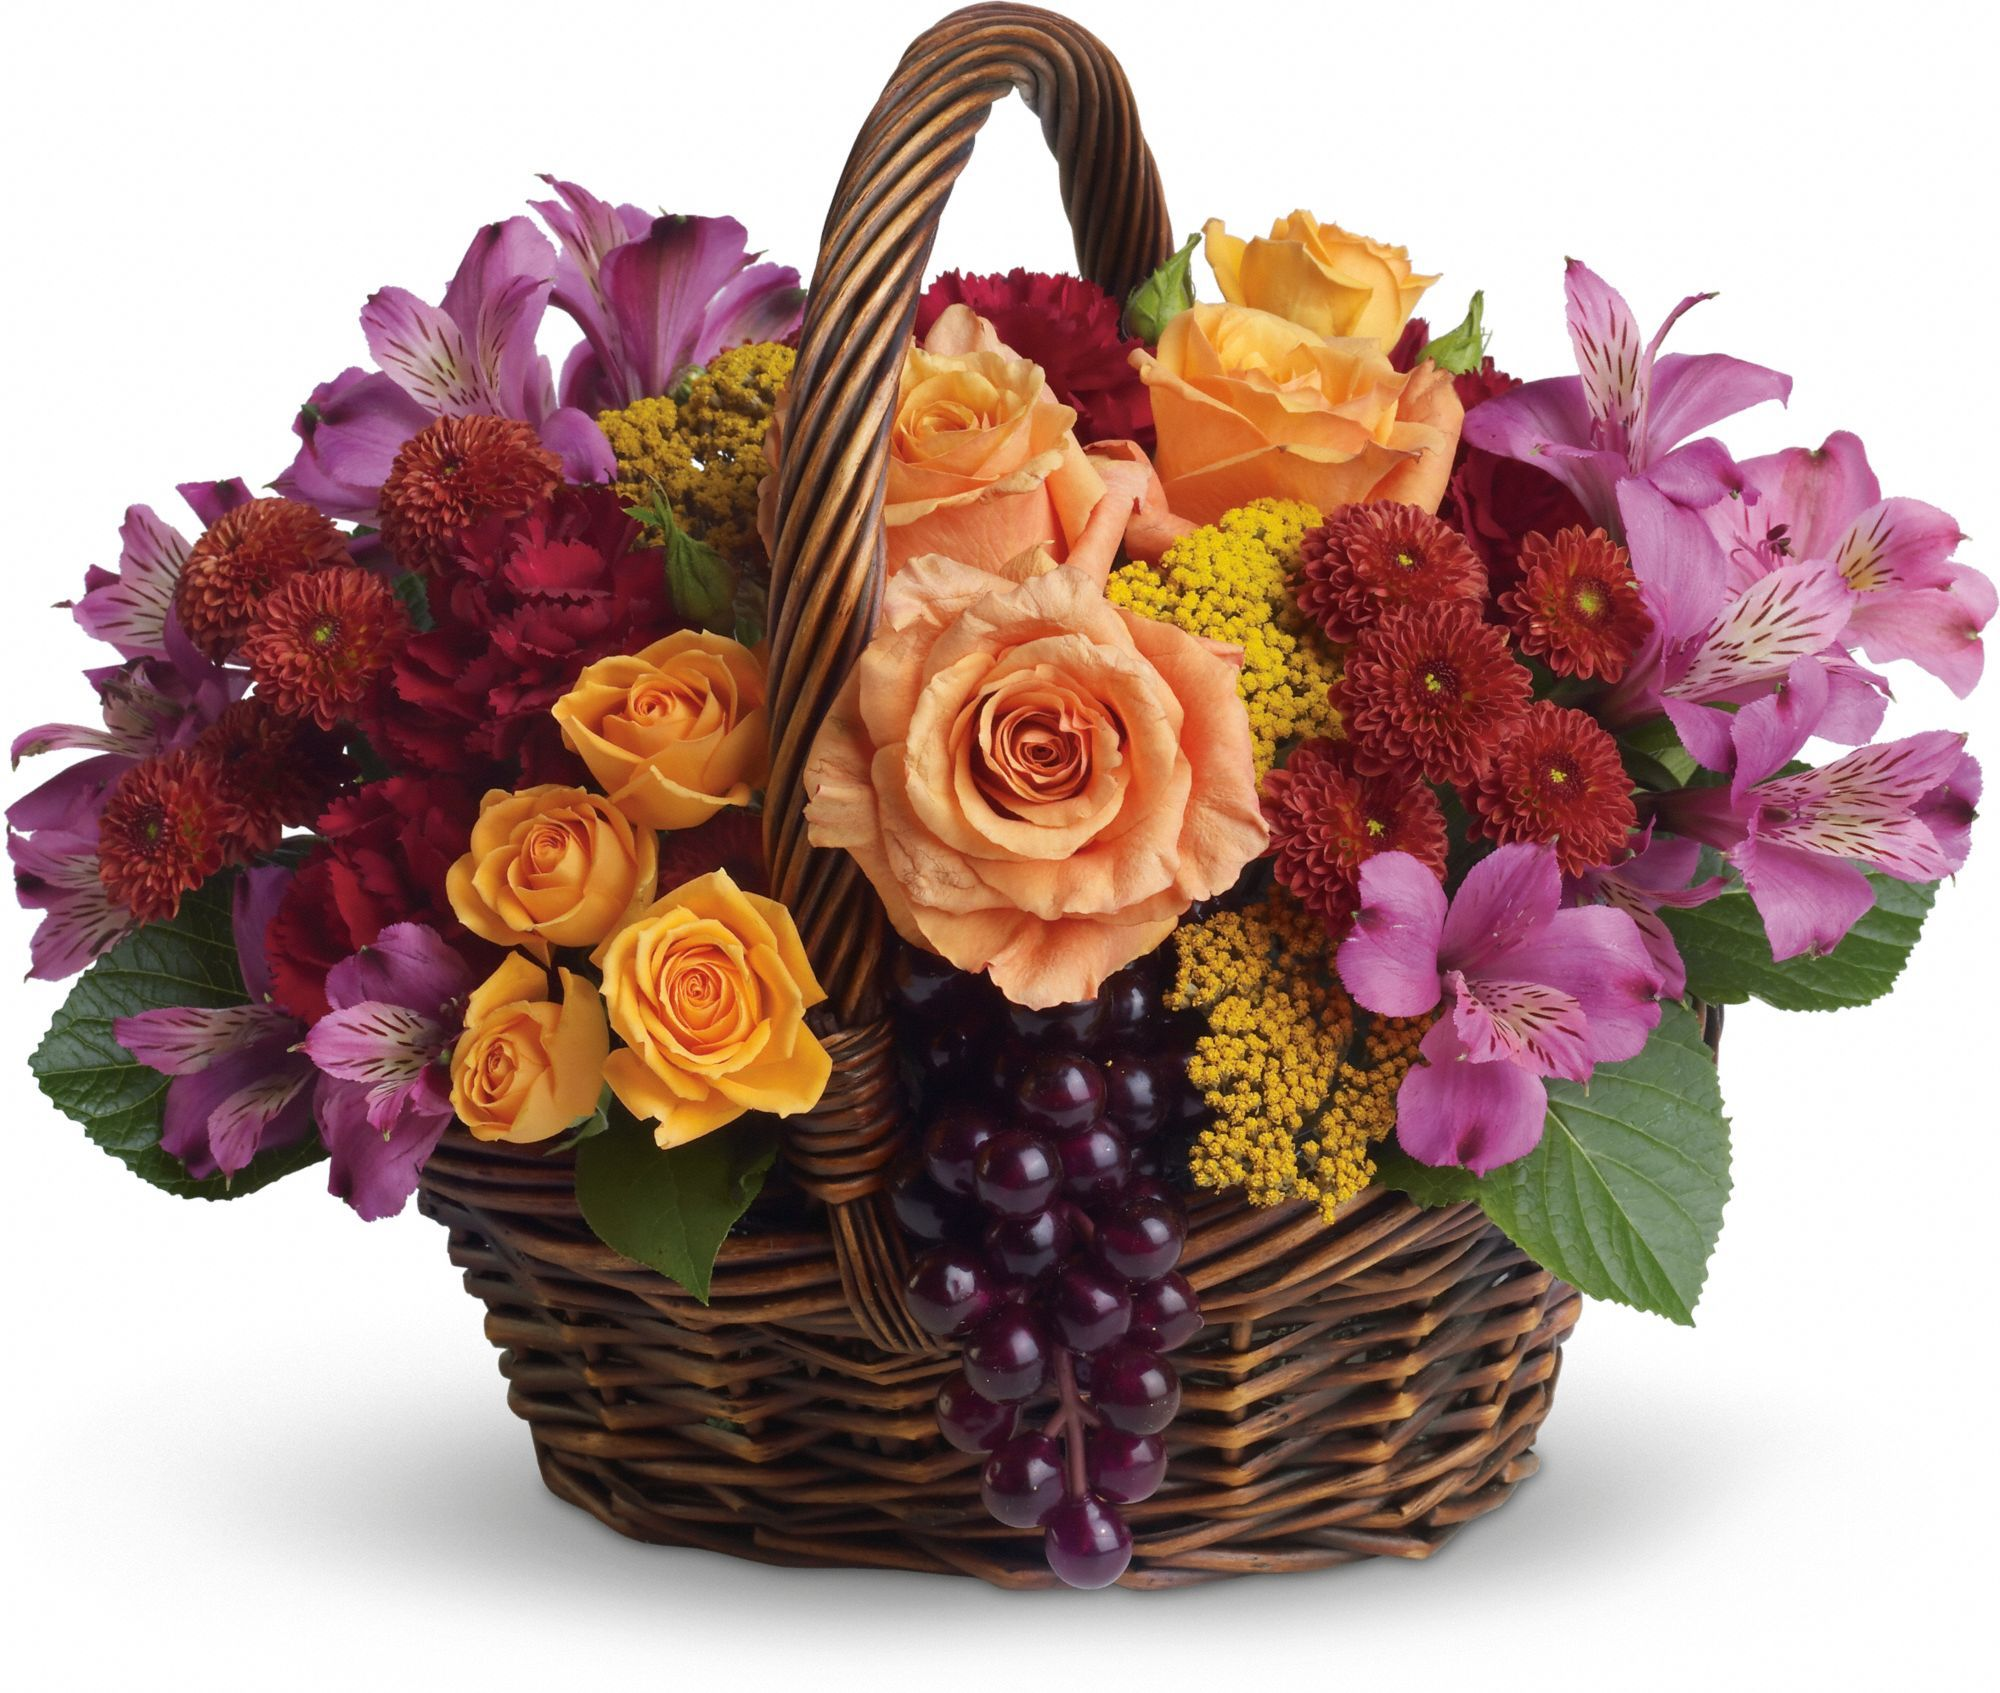 Sending Joy Save 25 on this bouquet and many others with